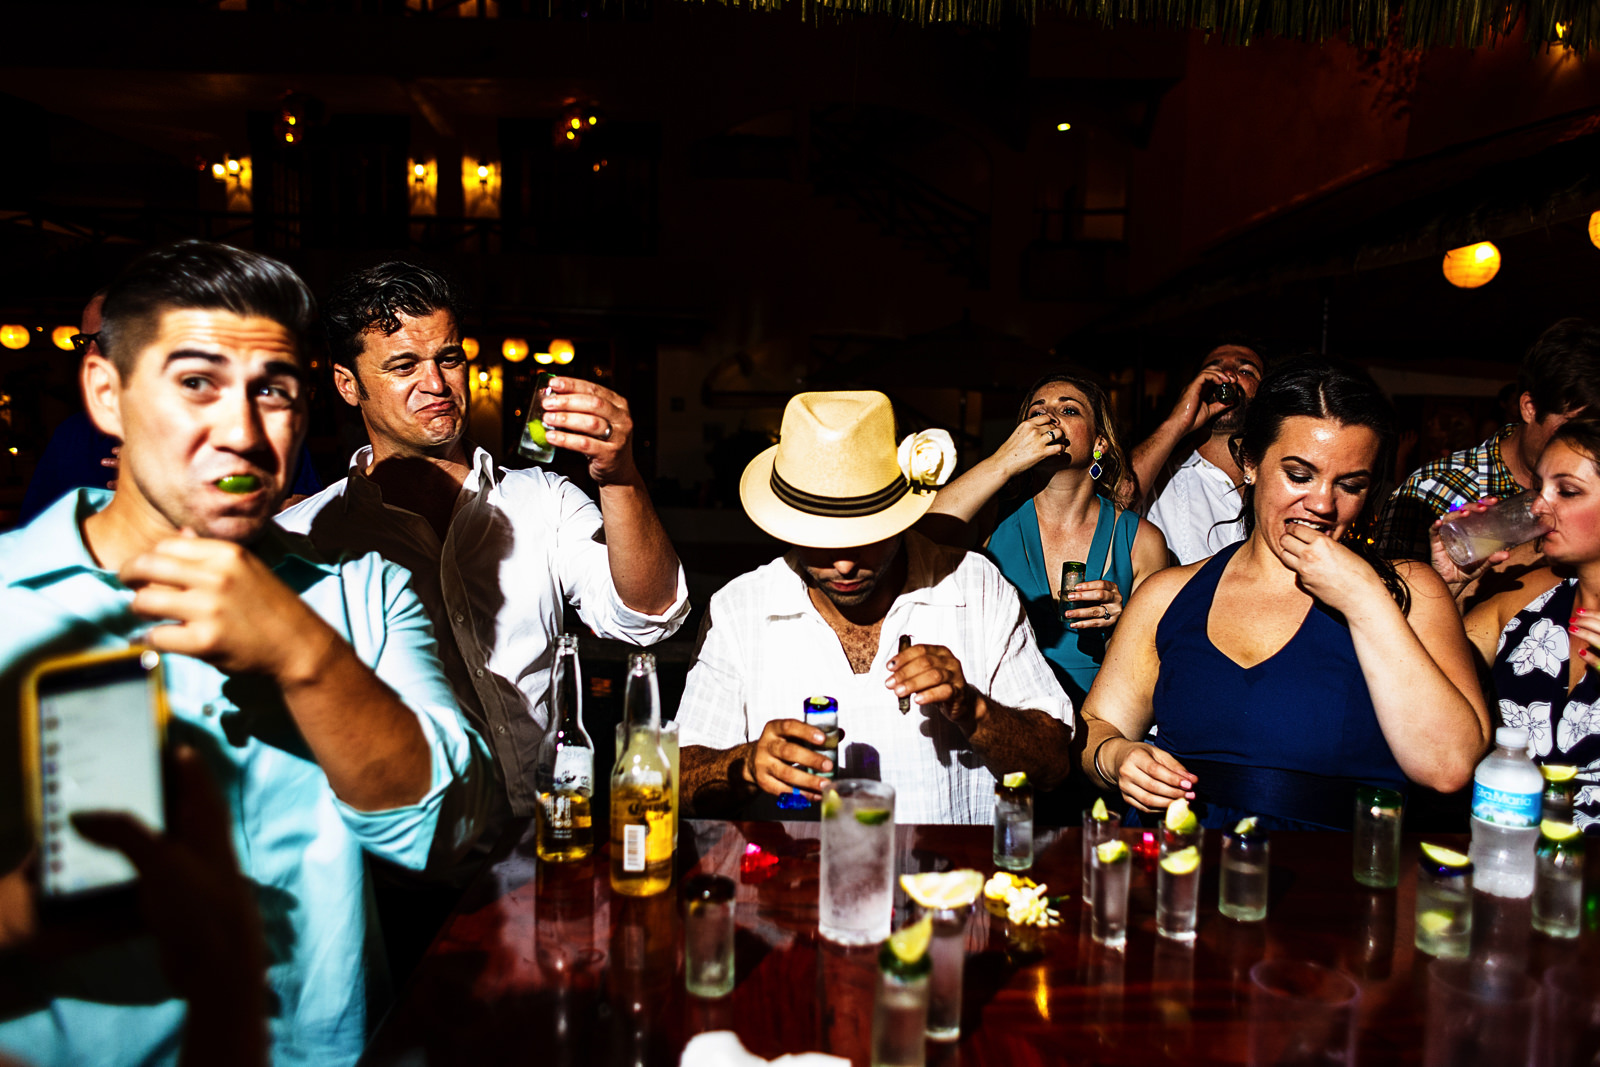 Several wedding guests having a tequila shot at the bar with the groom